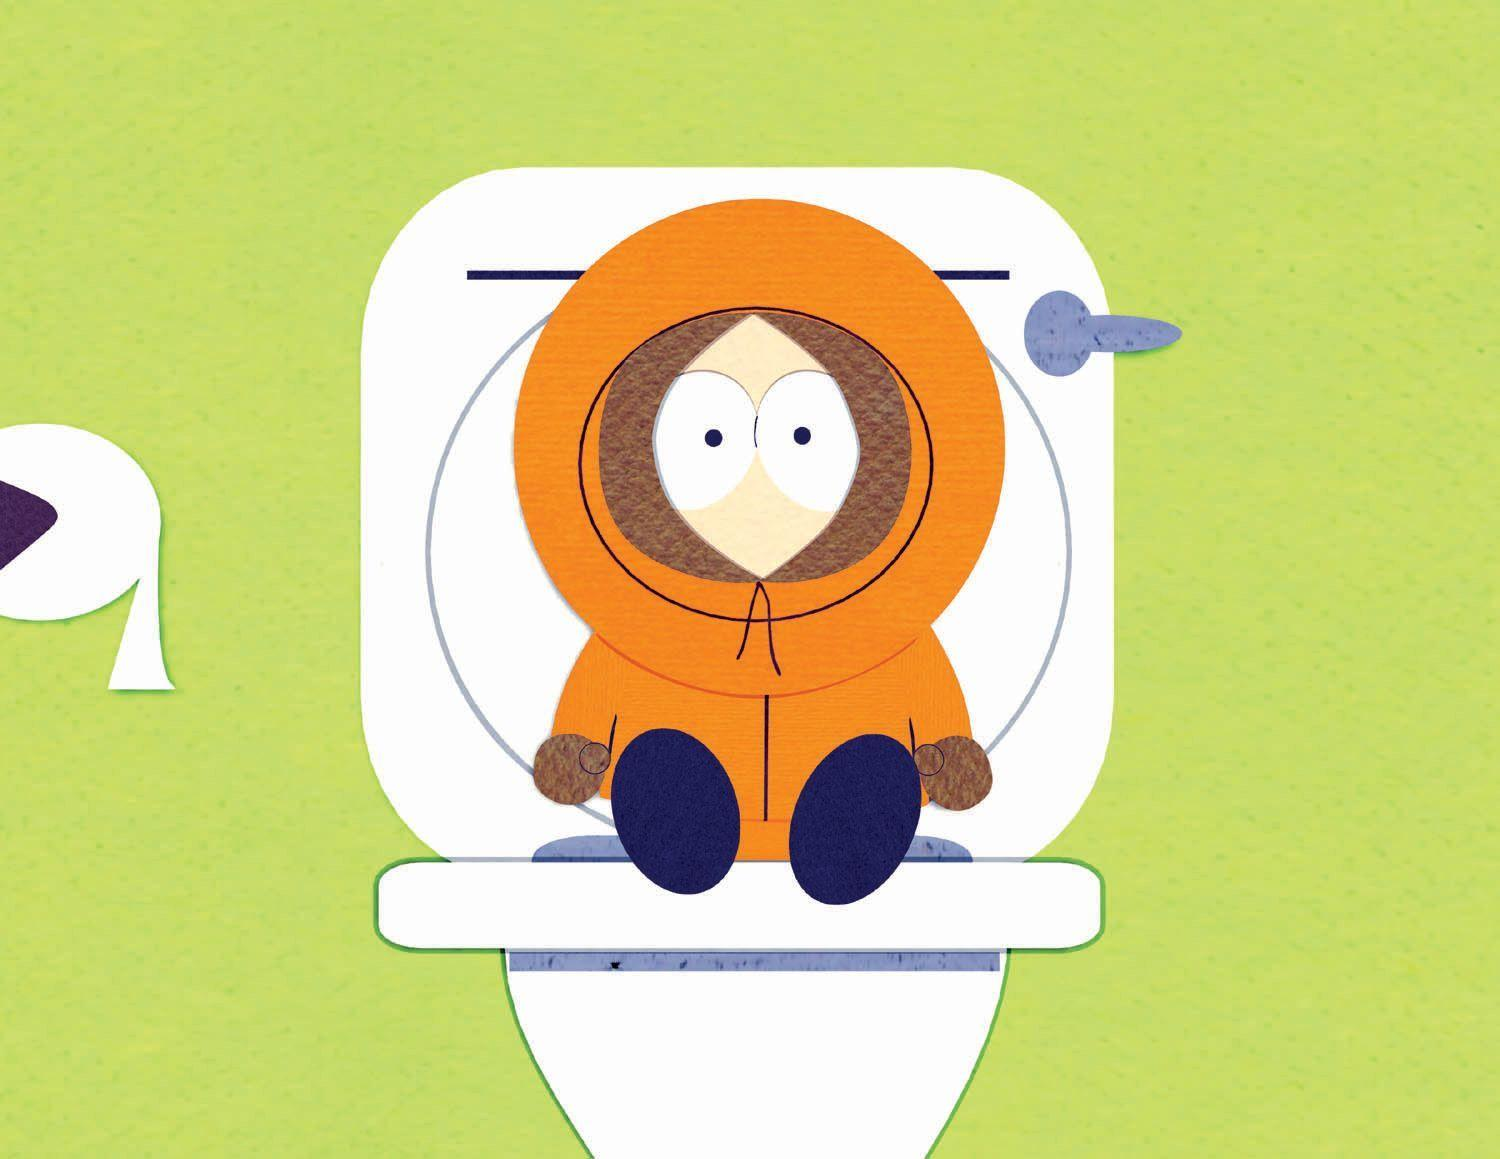 South park wallpapers kenny wallpaper cave - Pics of kenny from south park ...